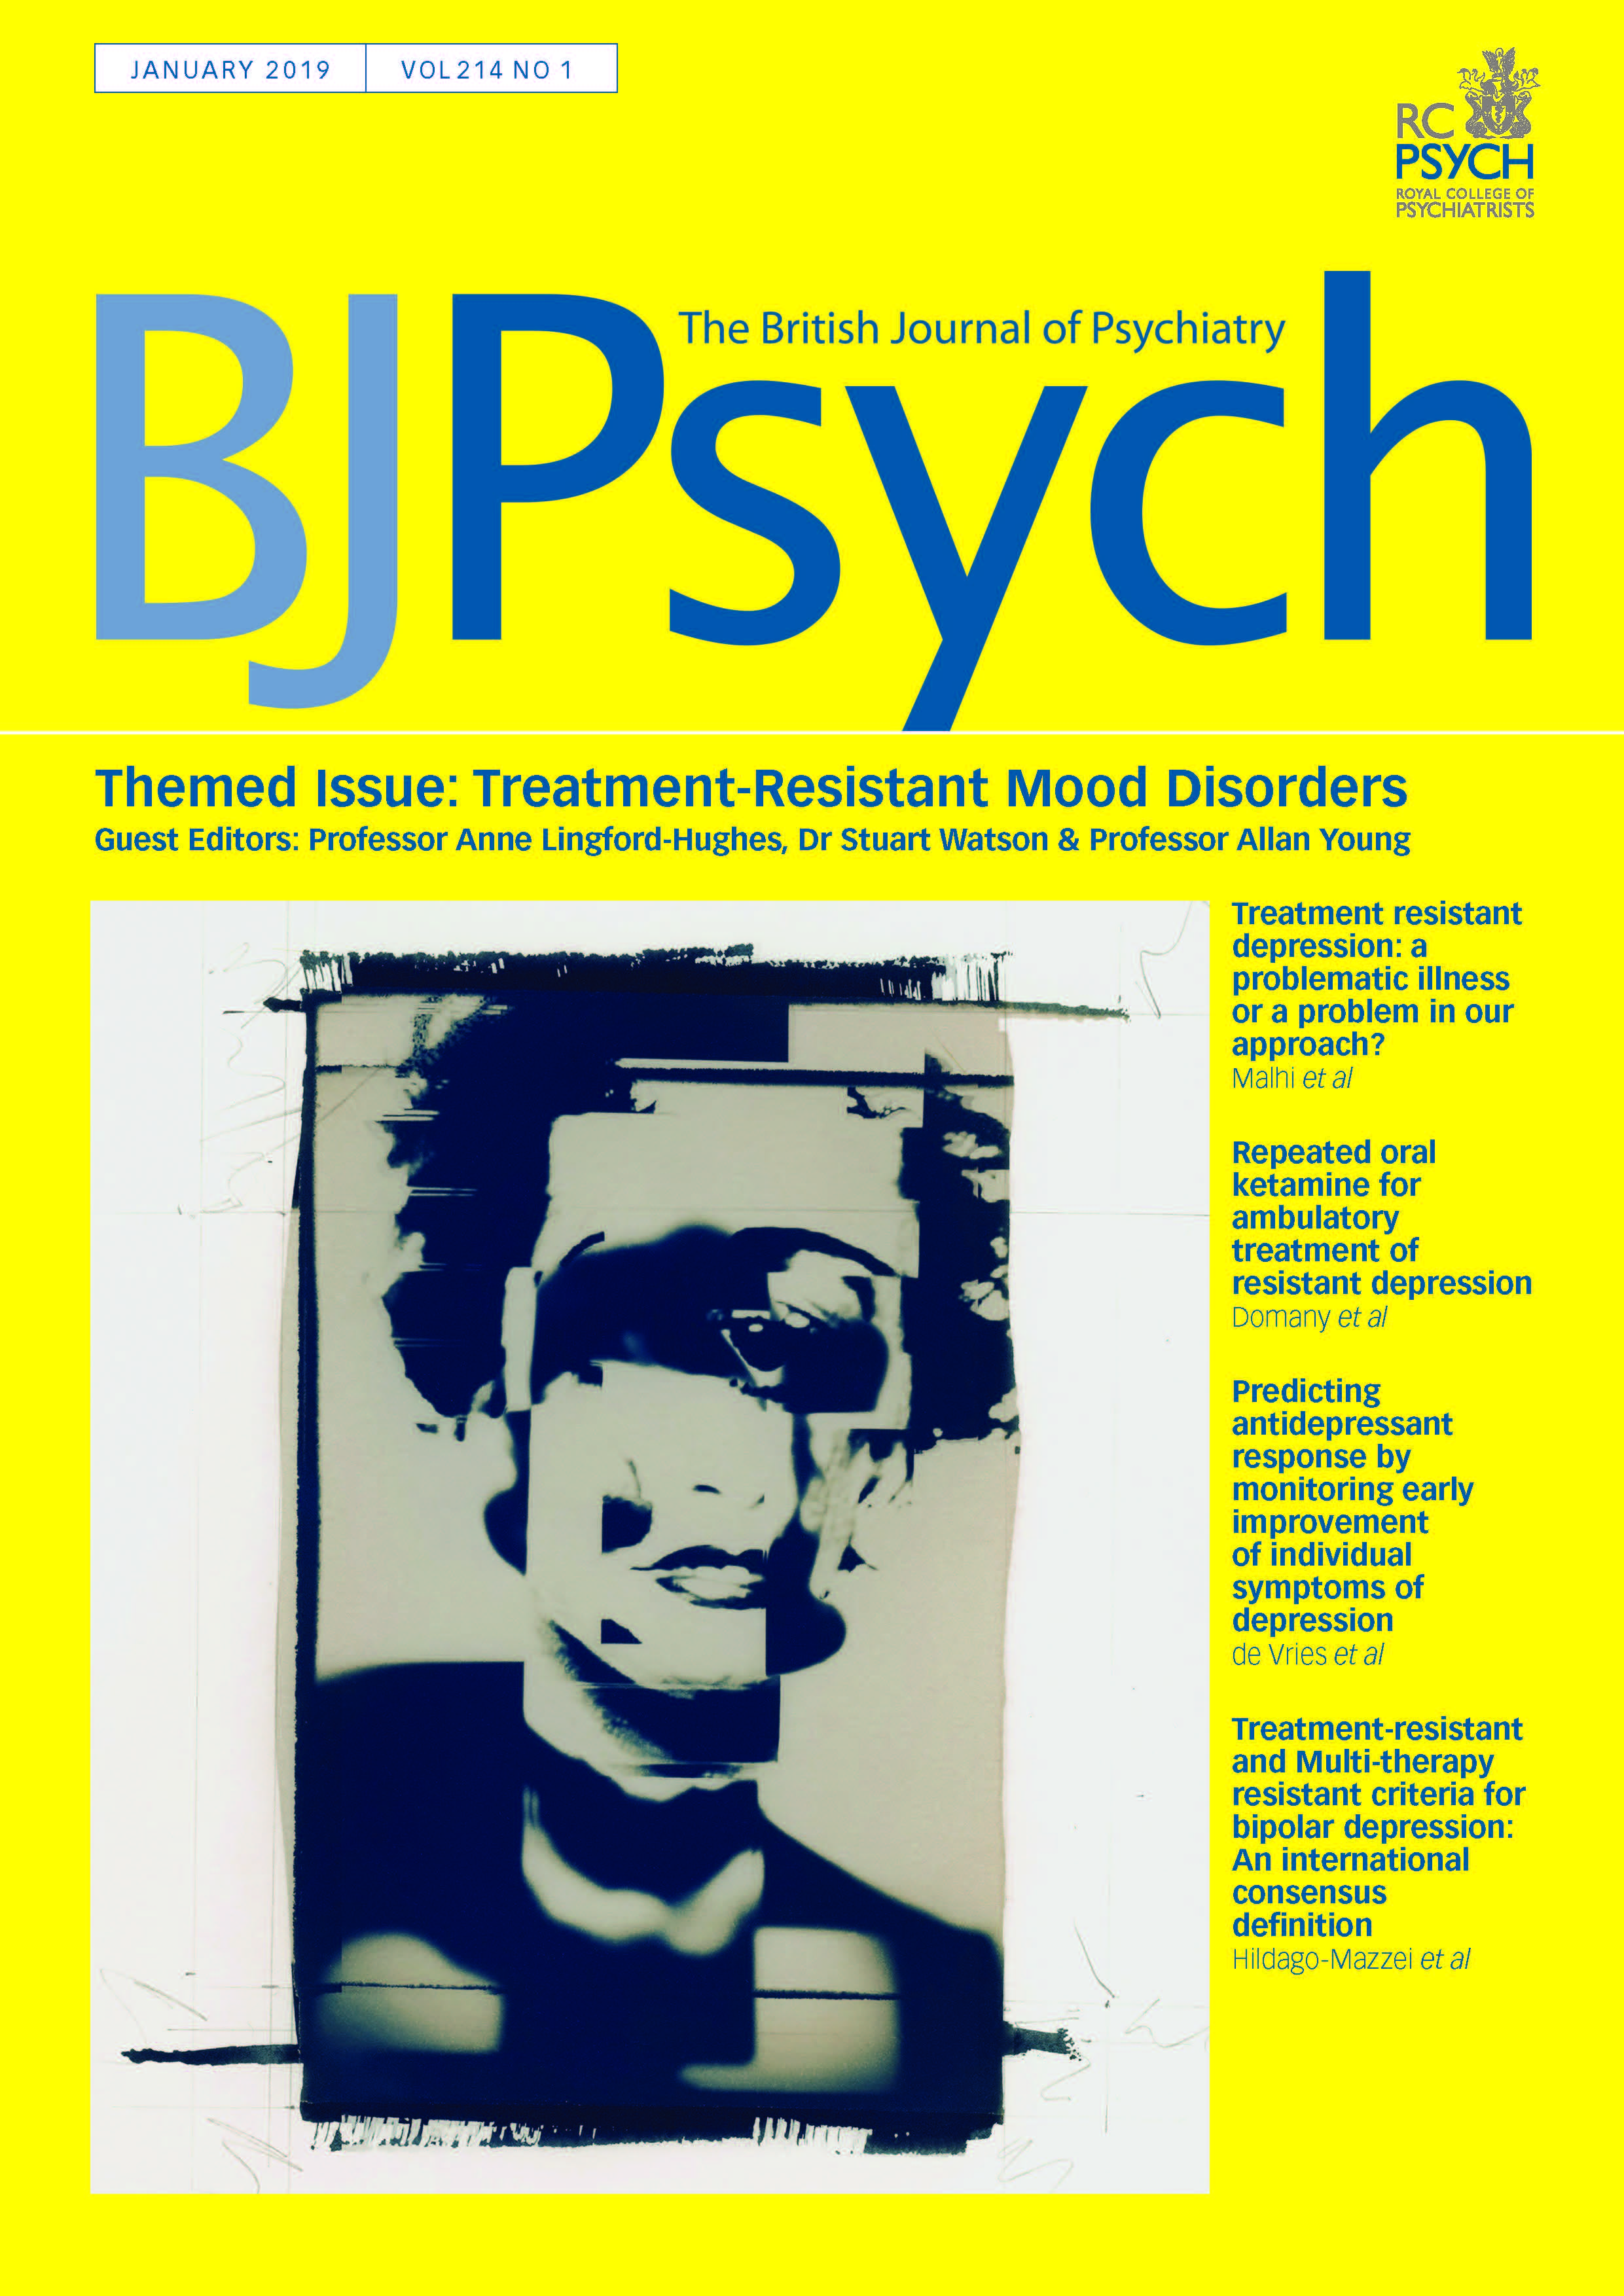 The British Journal of Psychiatry: Volume 214 - Themed Issue